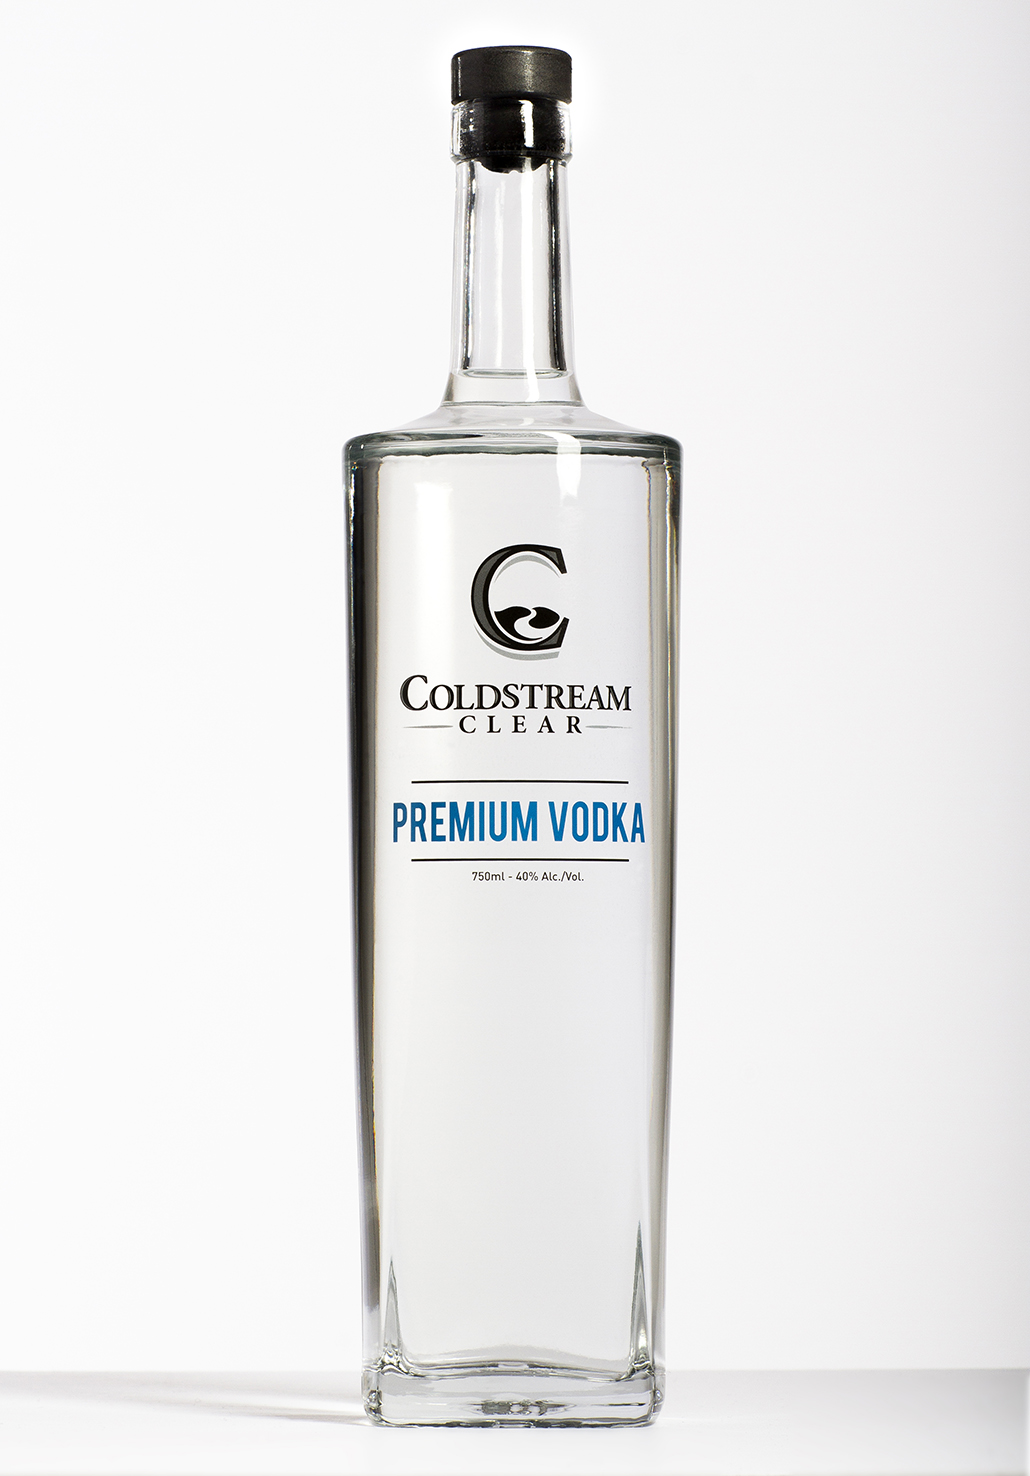 A product image for Coldstream Premium Vodka